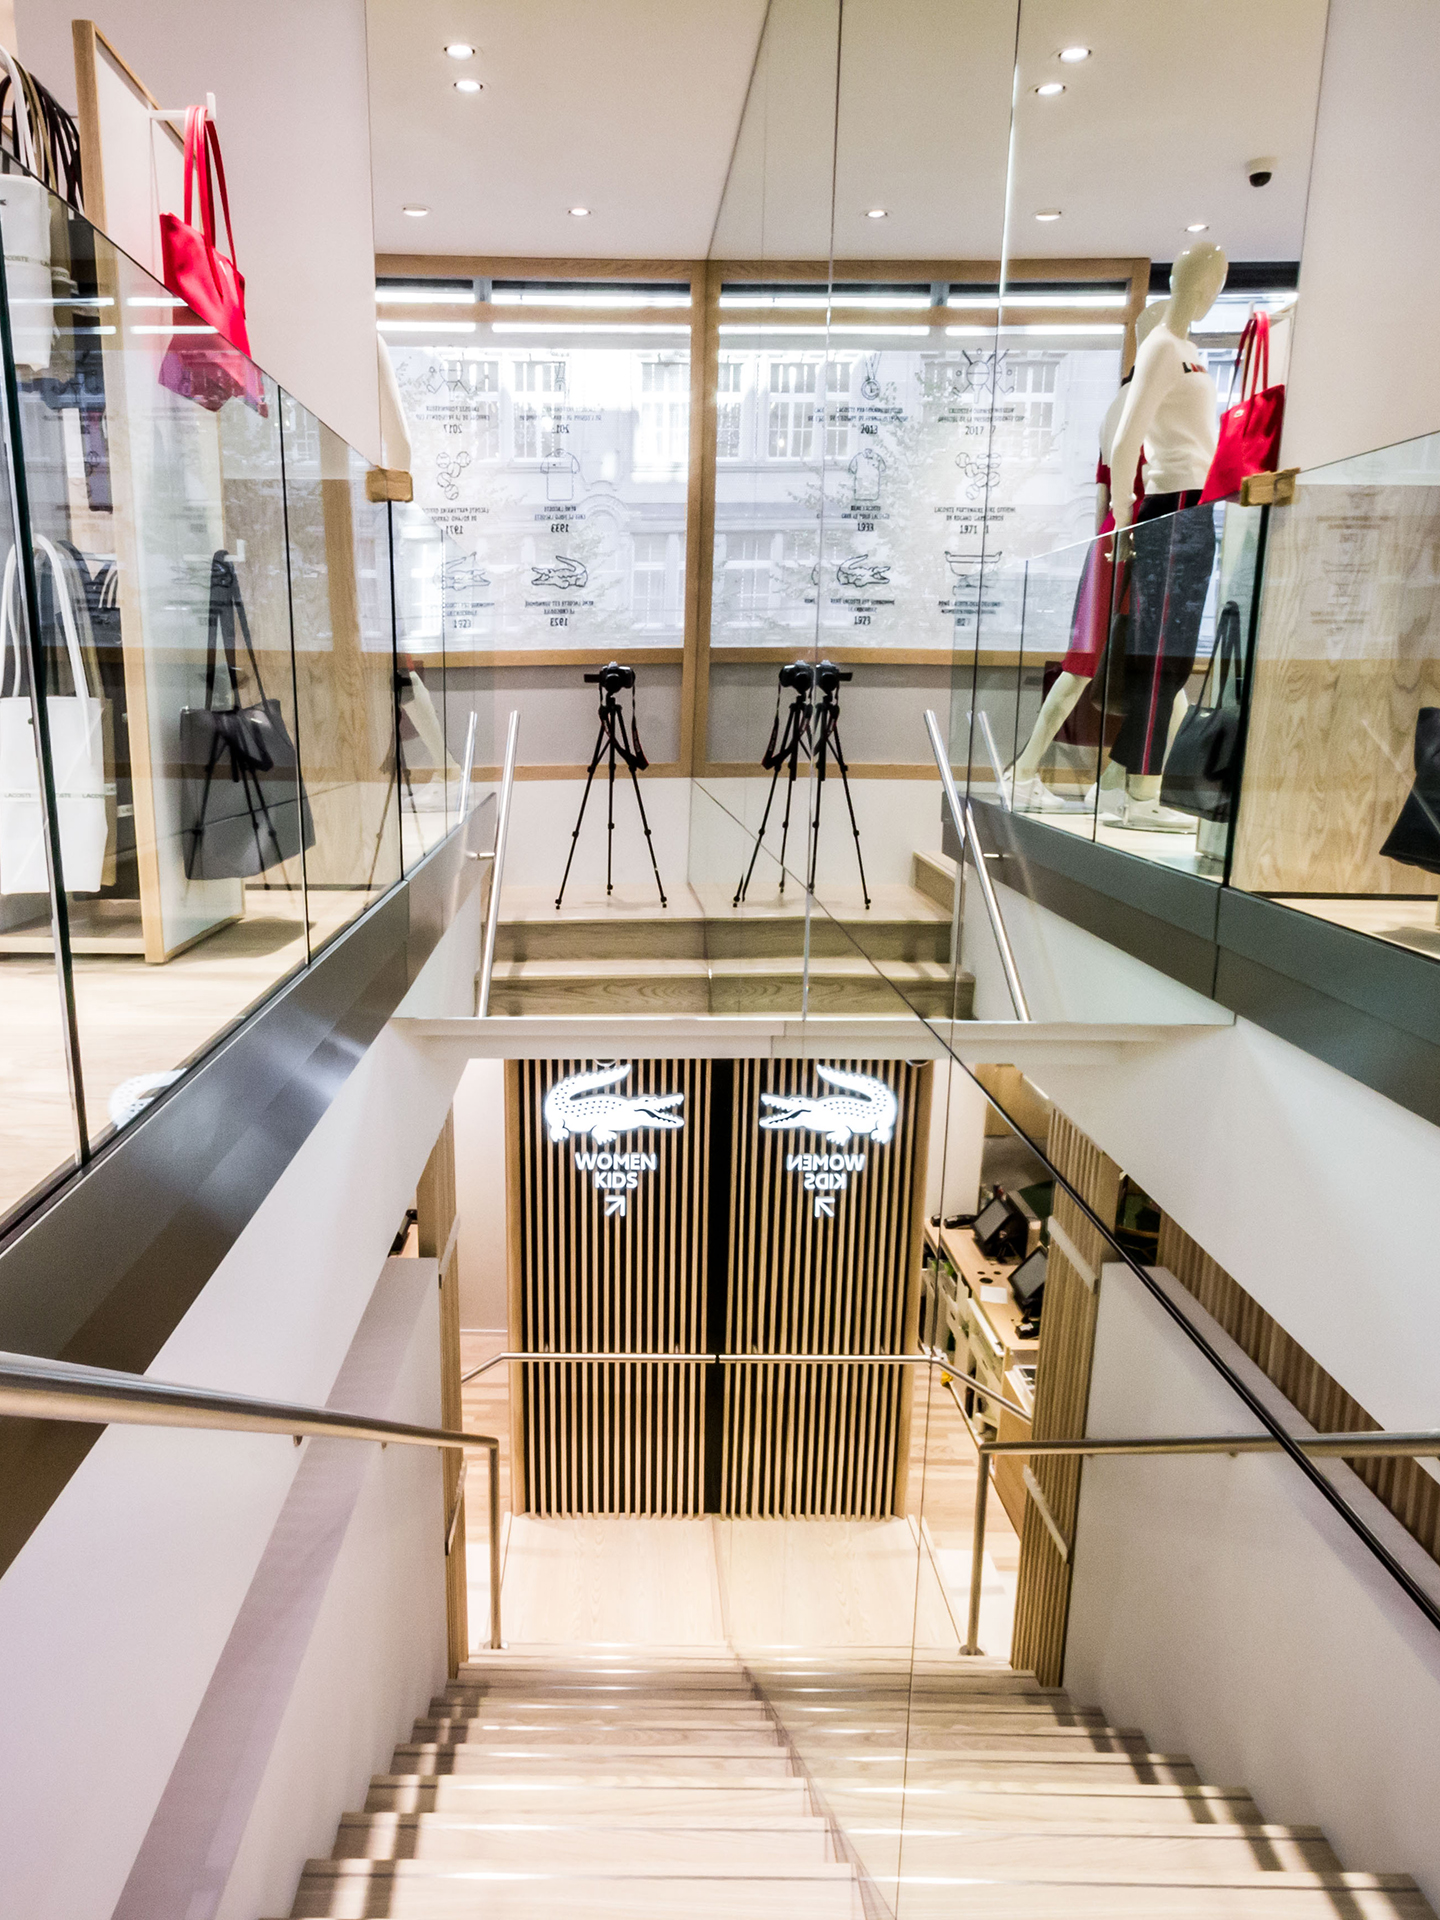 Interior view of the Lacoste Store in Zurich